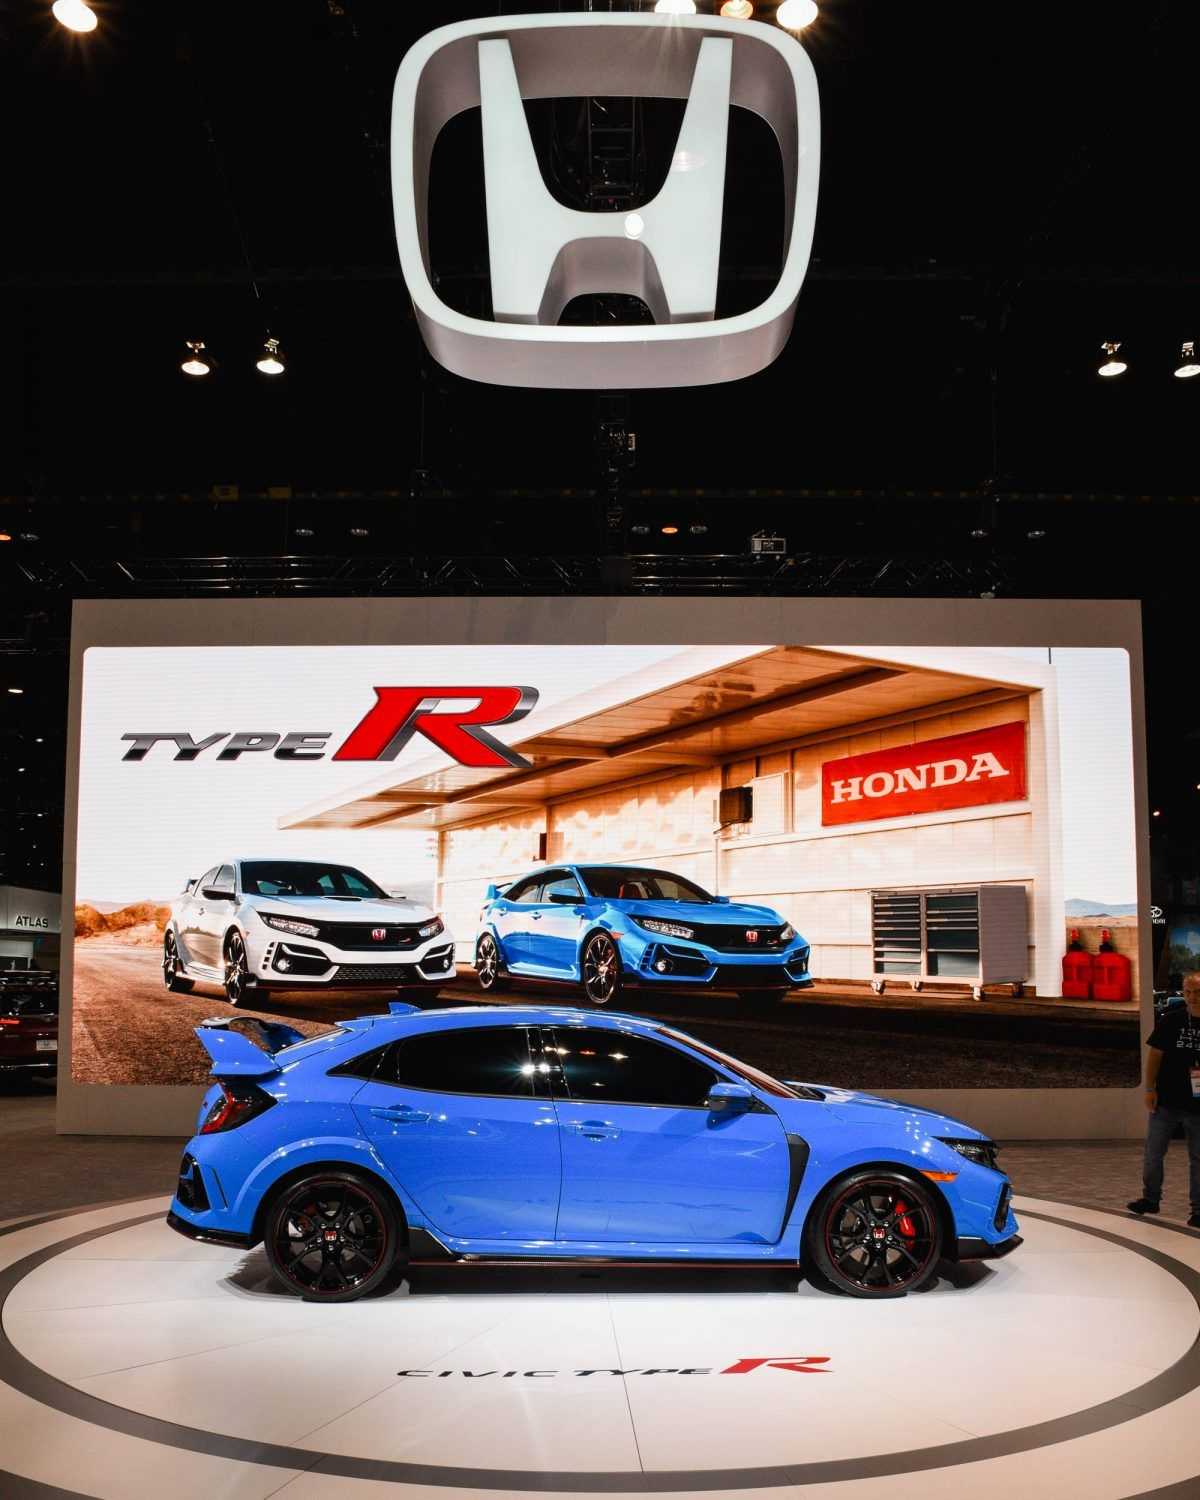 2020 Honda Civic Type R at the Chicago Auto Show in 2020